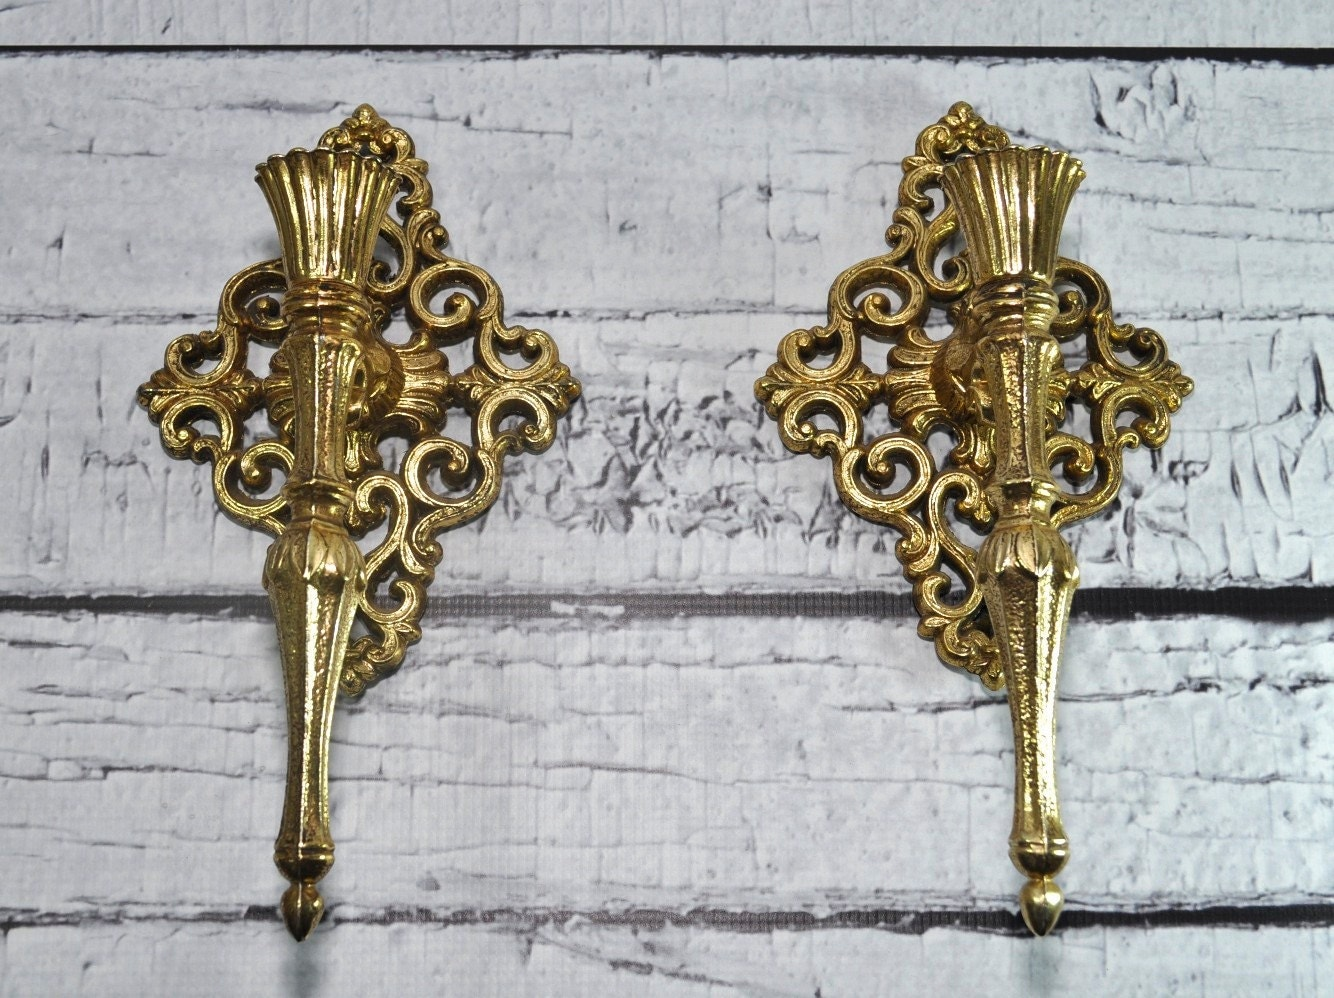 Ornate Vintage Gold Candle Holder Wall By DooleyFritzVintage